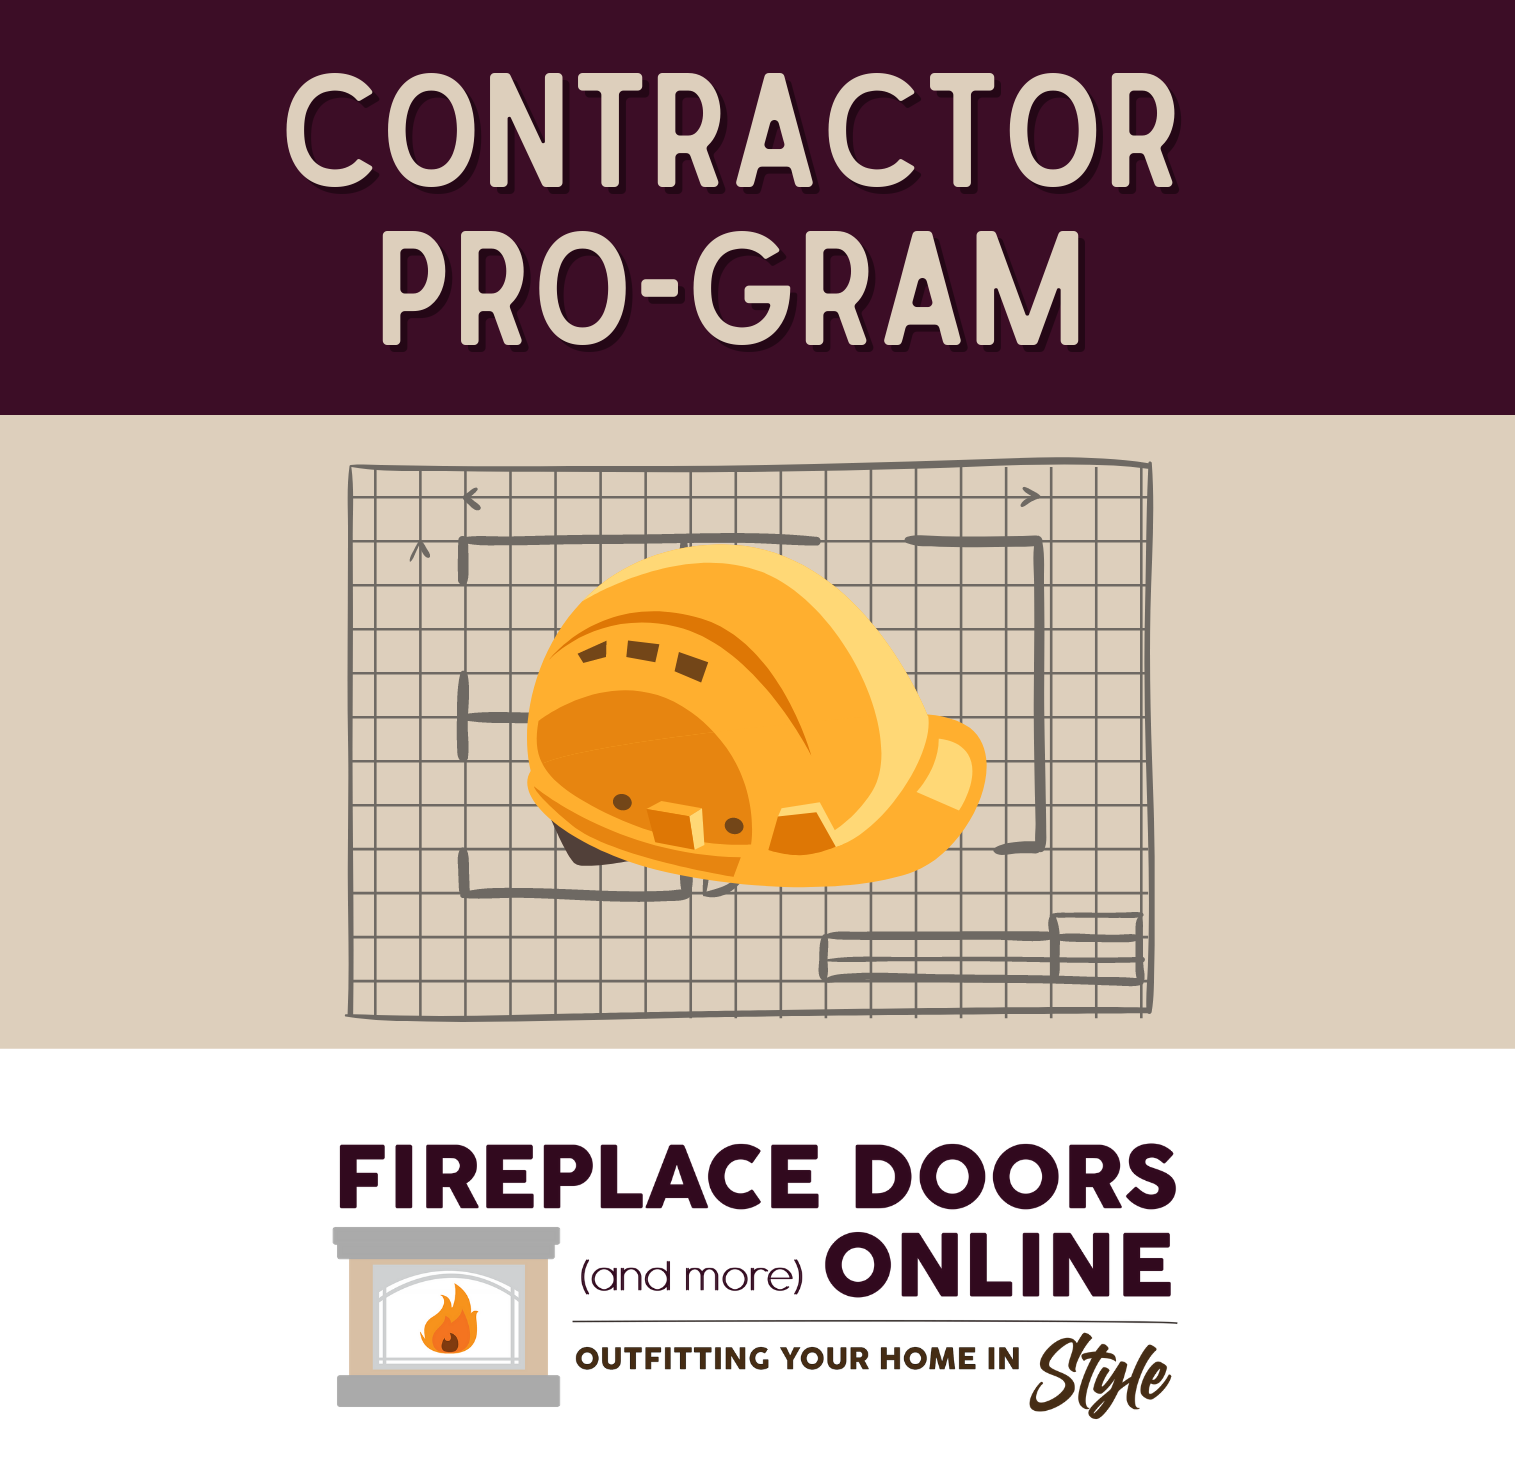 Join our Contractor PRO-gram for exclusive products and deals!